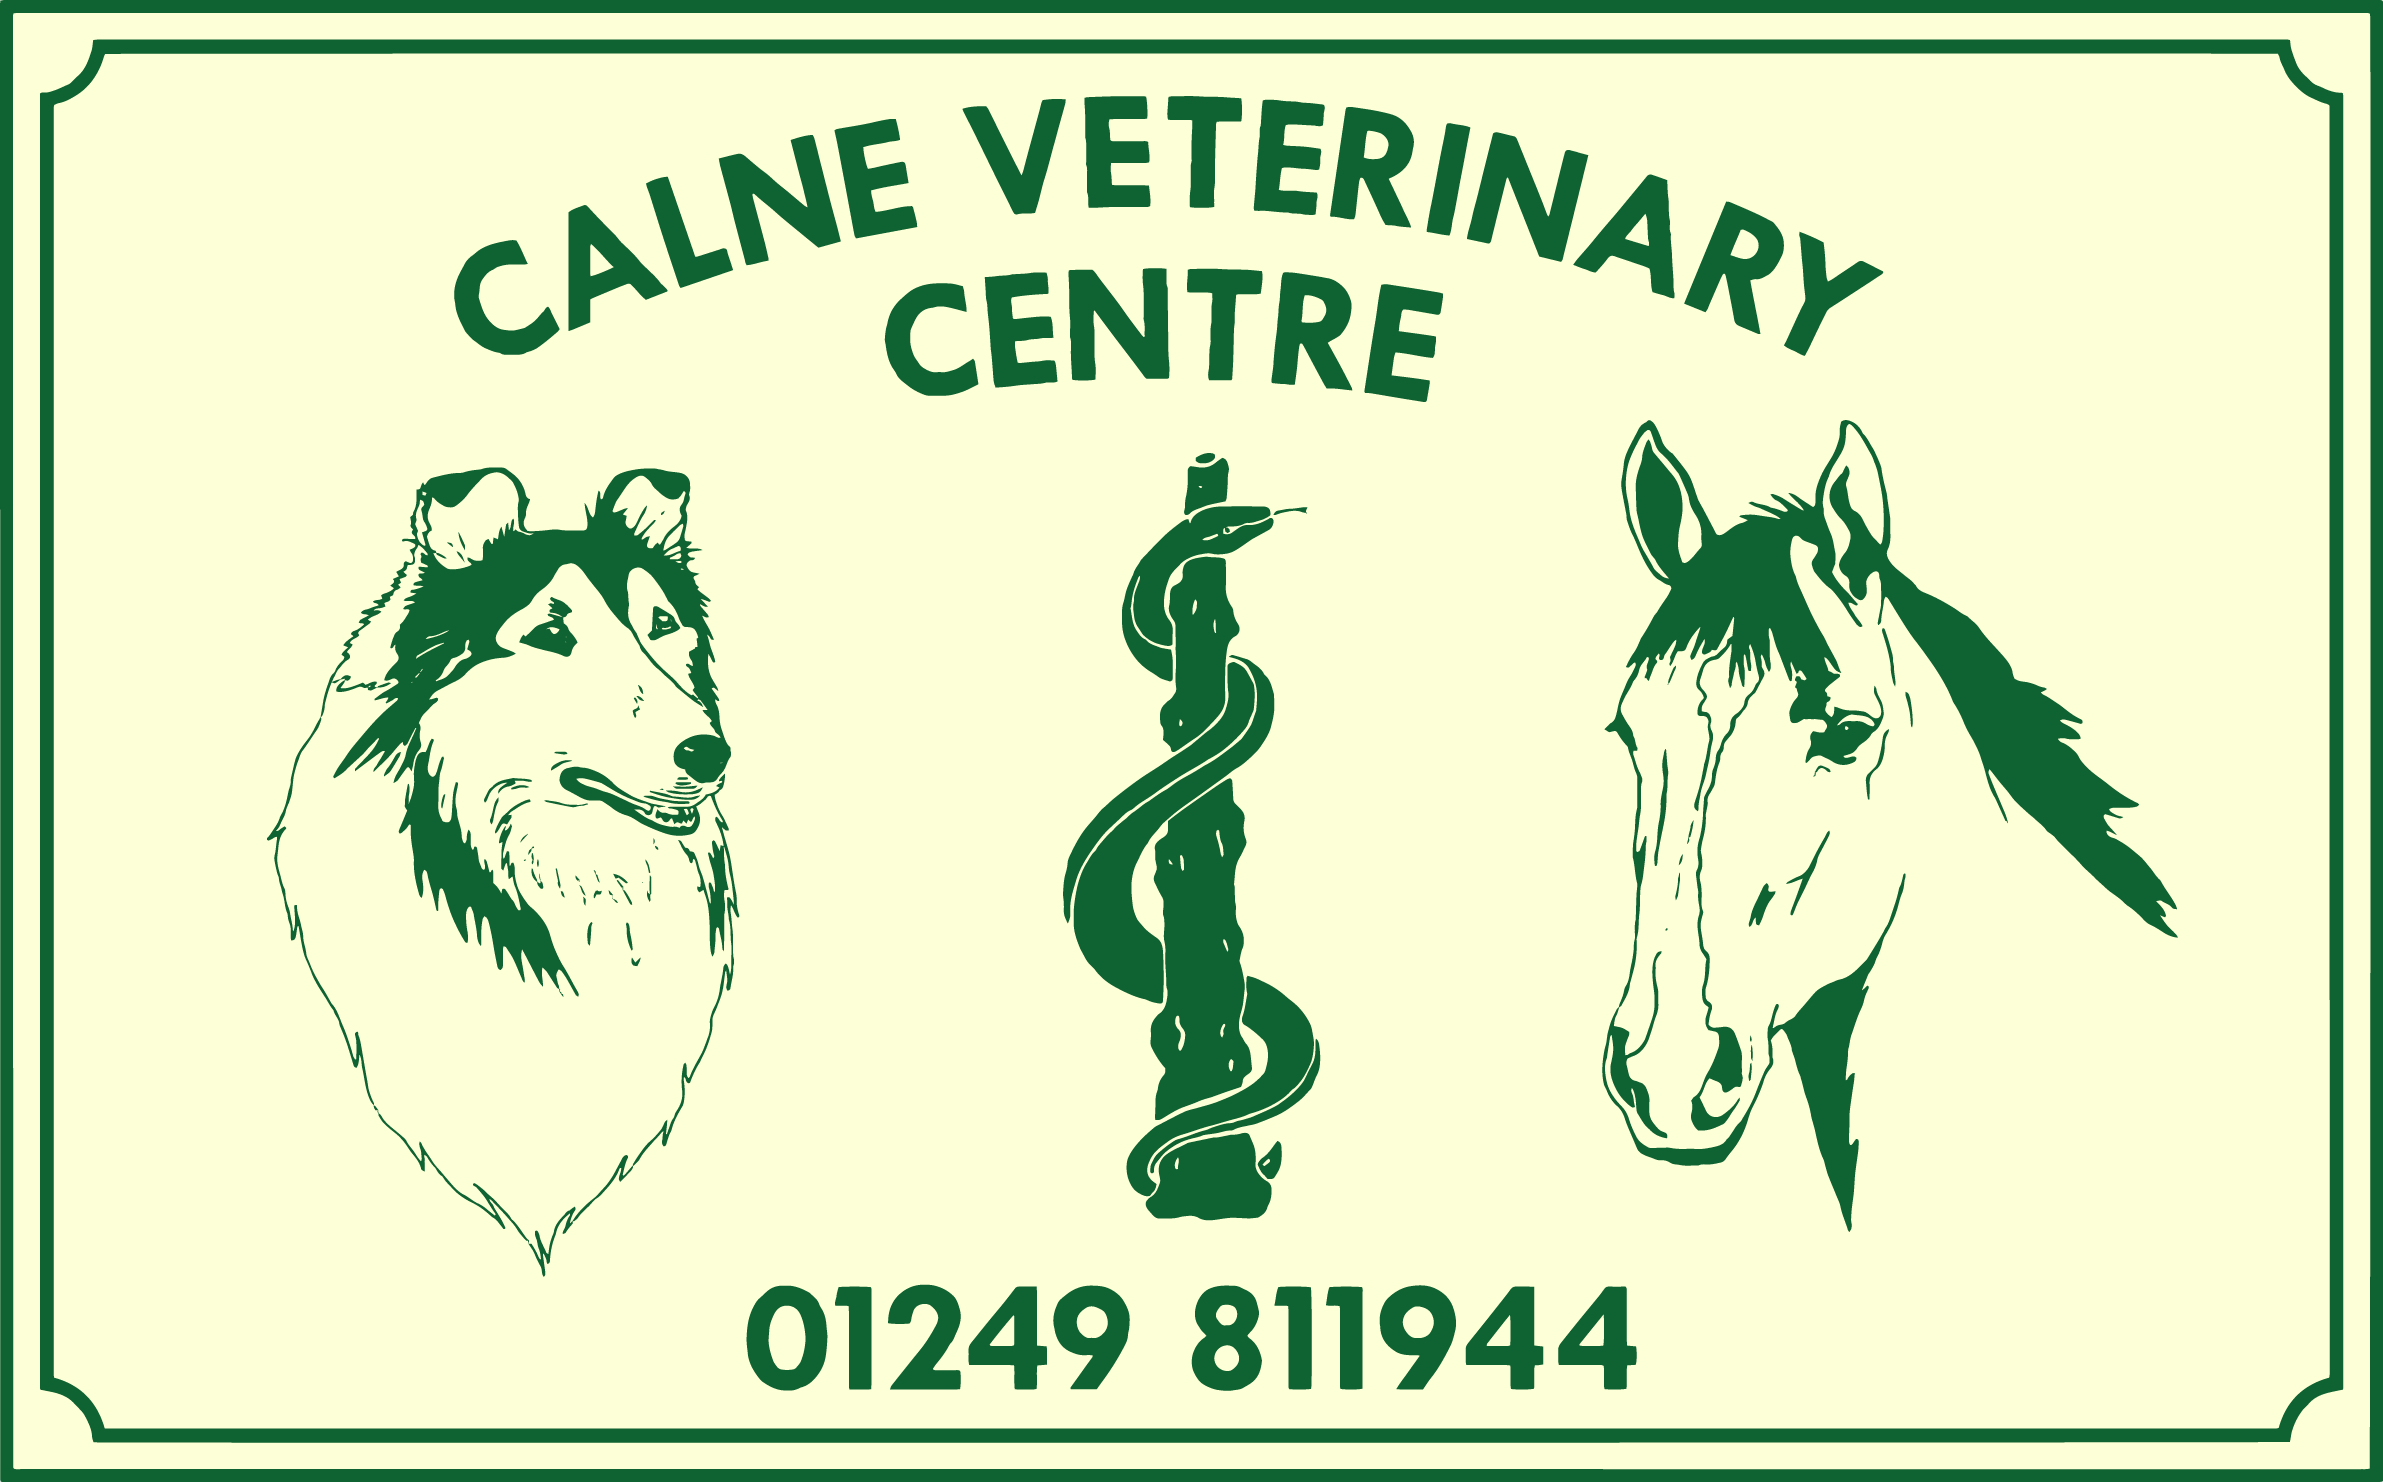 Calne Veterinary Centre